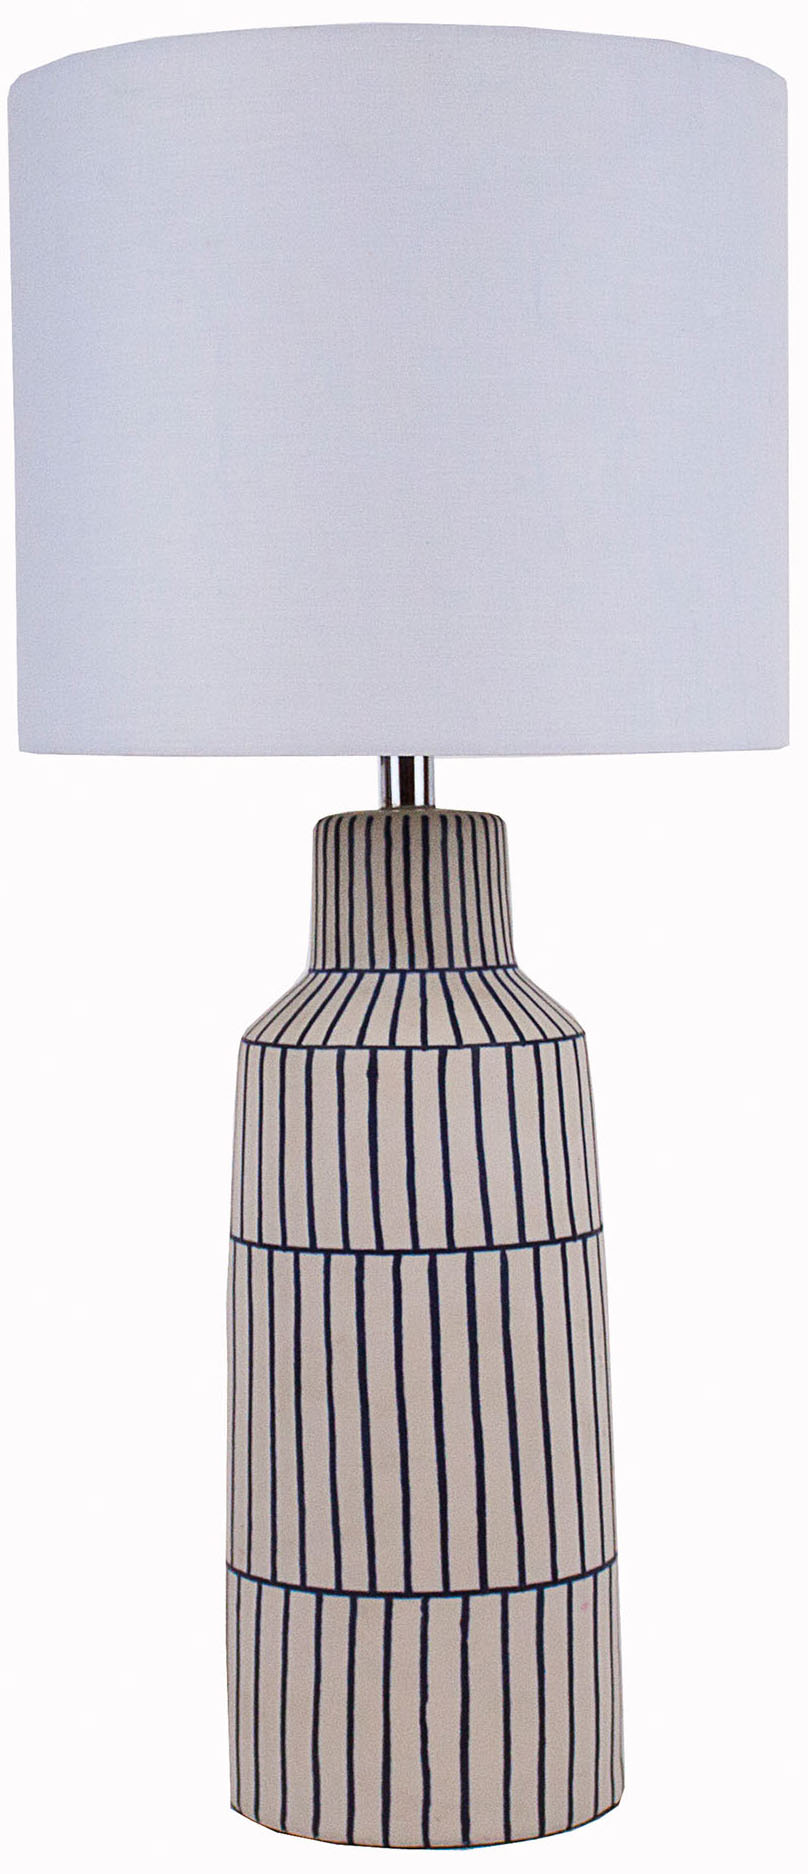 Evelyne Table Lamp, Blue/White